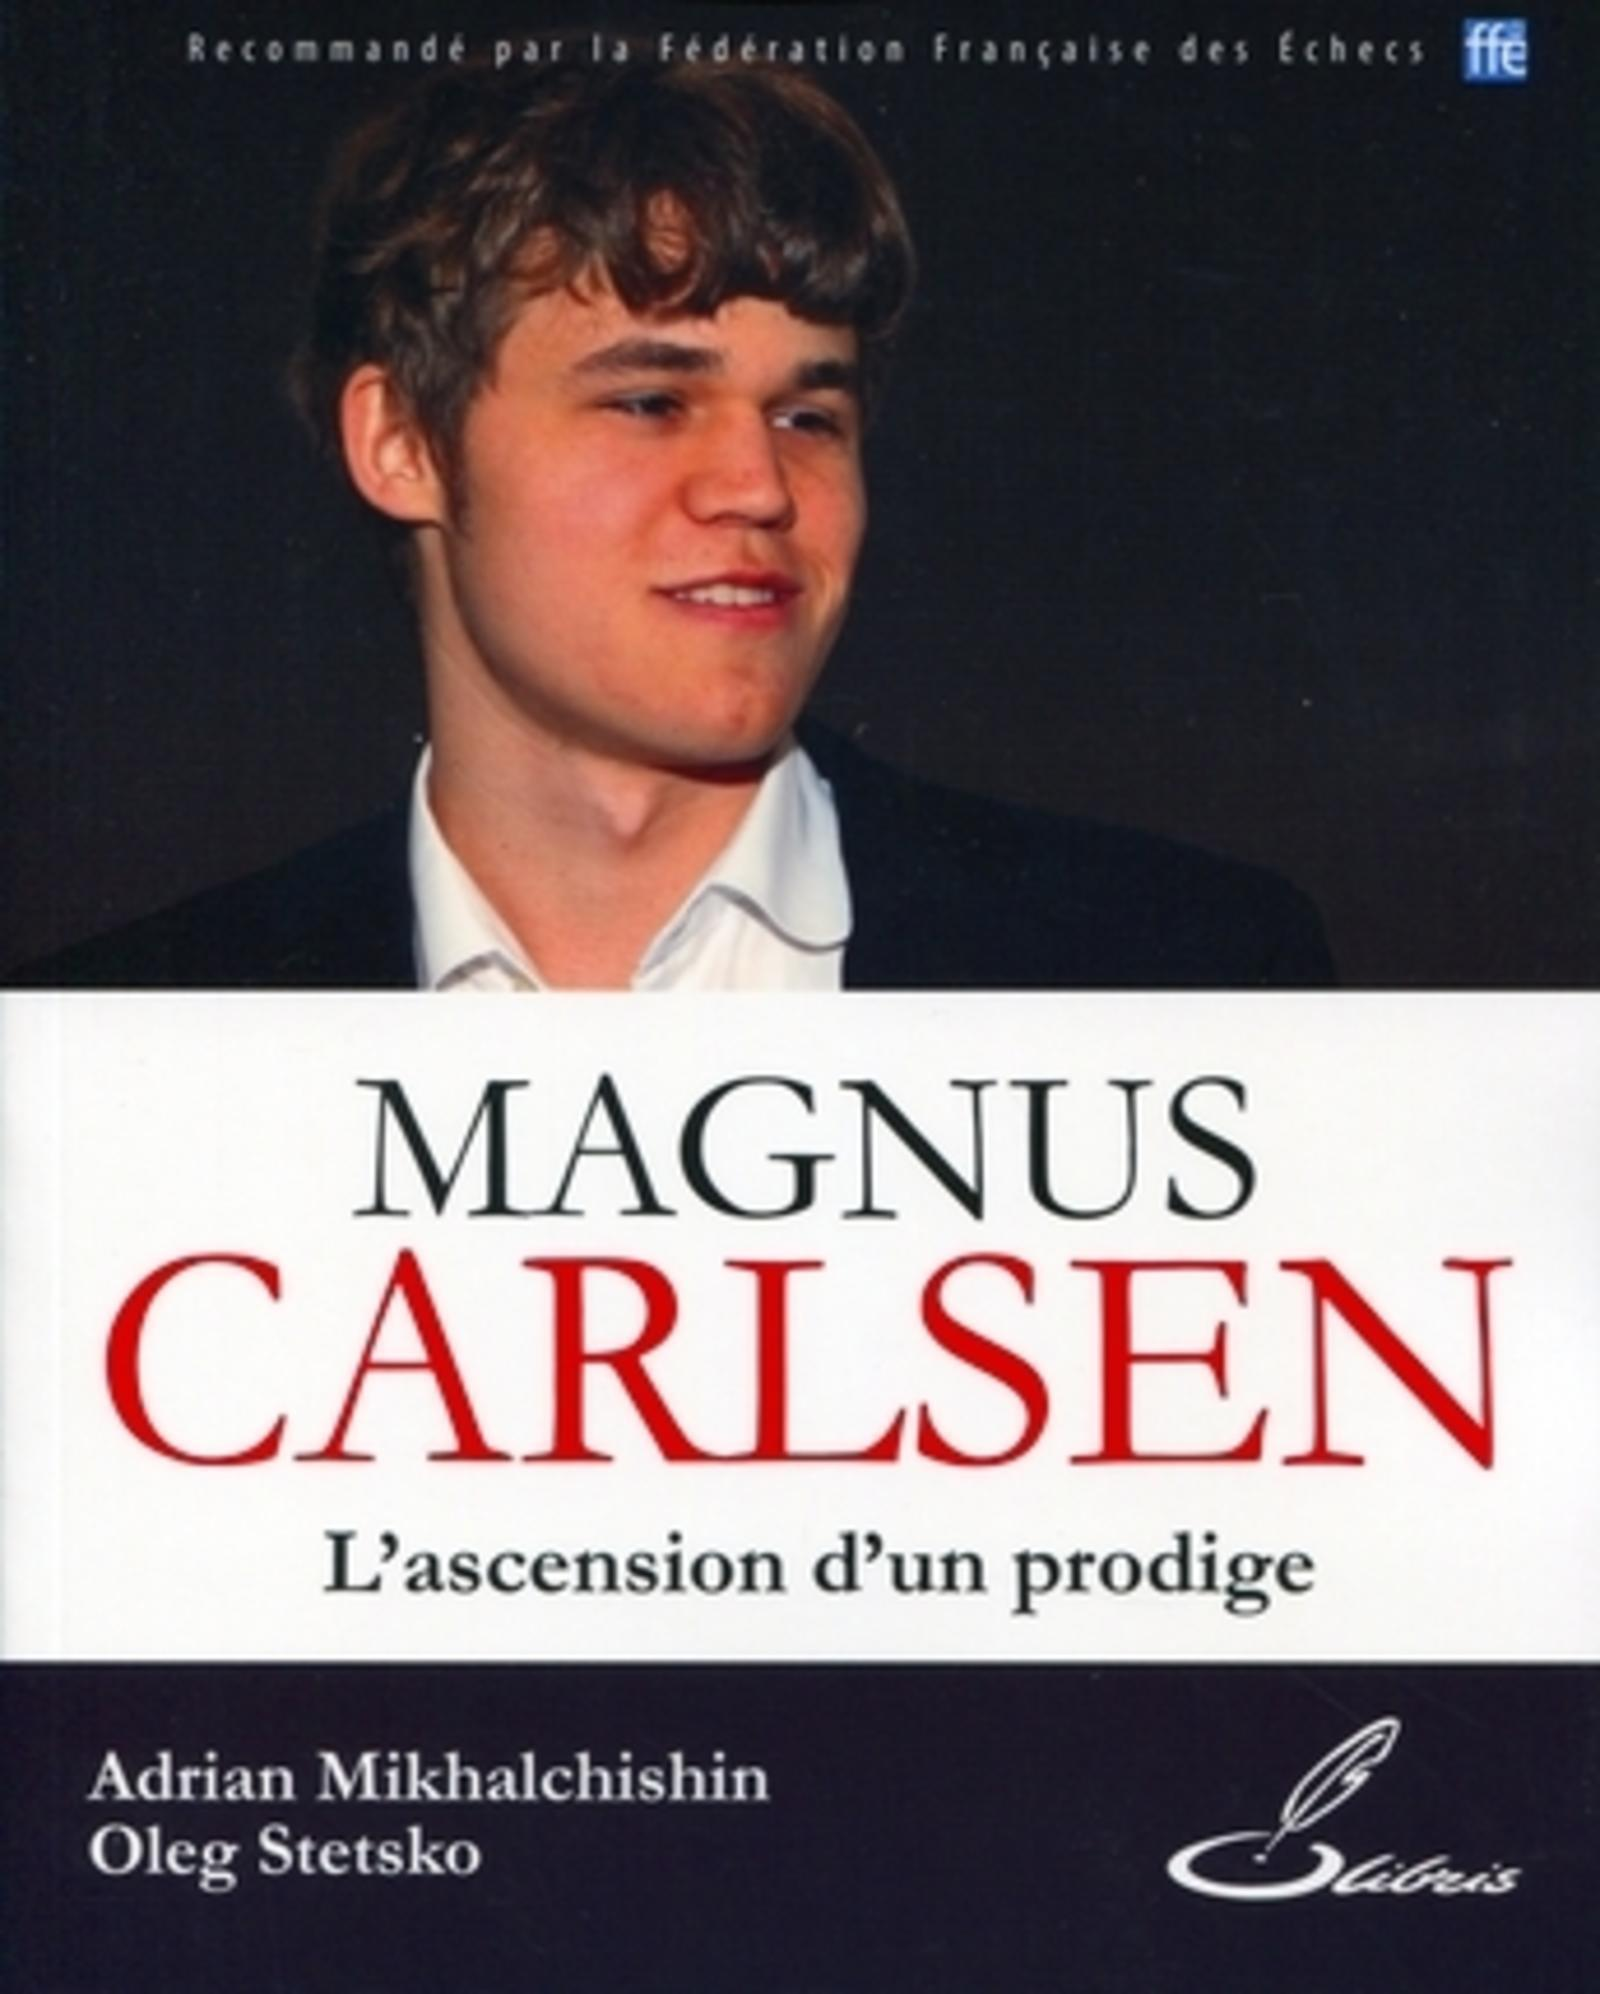 MAGNUS CARLSEN - L'ASCENSION D'UN PRODIGE.